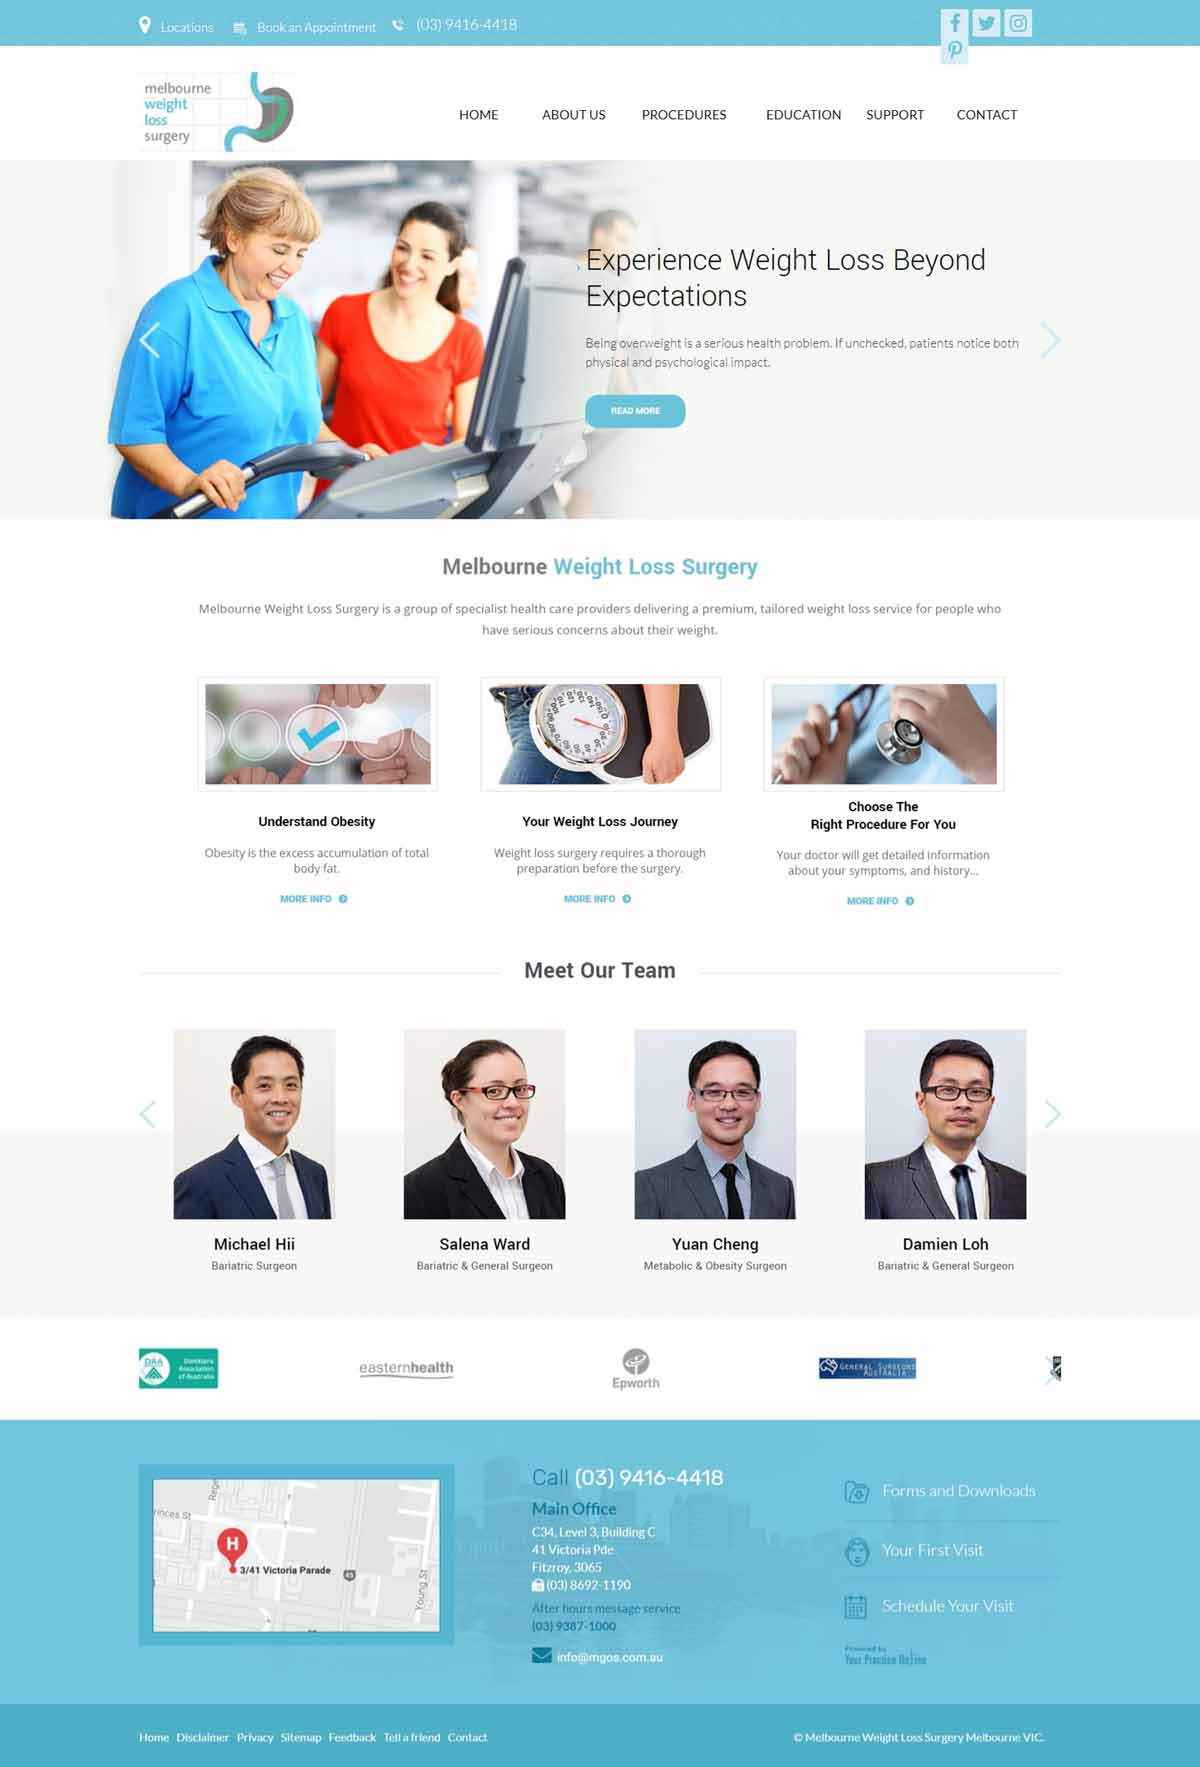 Weight Loss Surgeons Website Melbourne